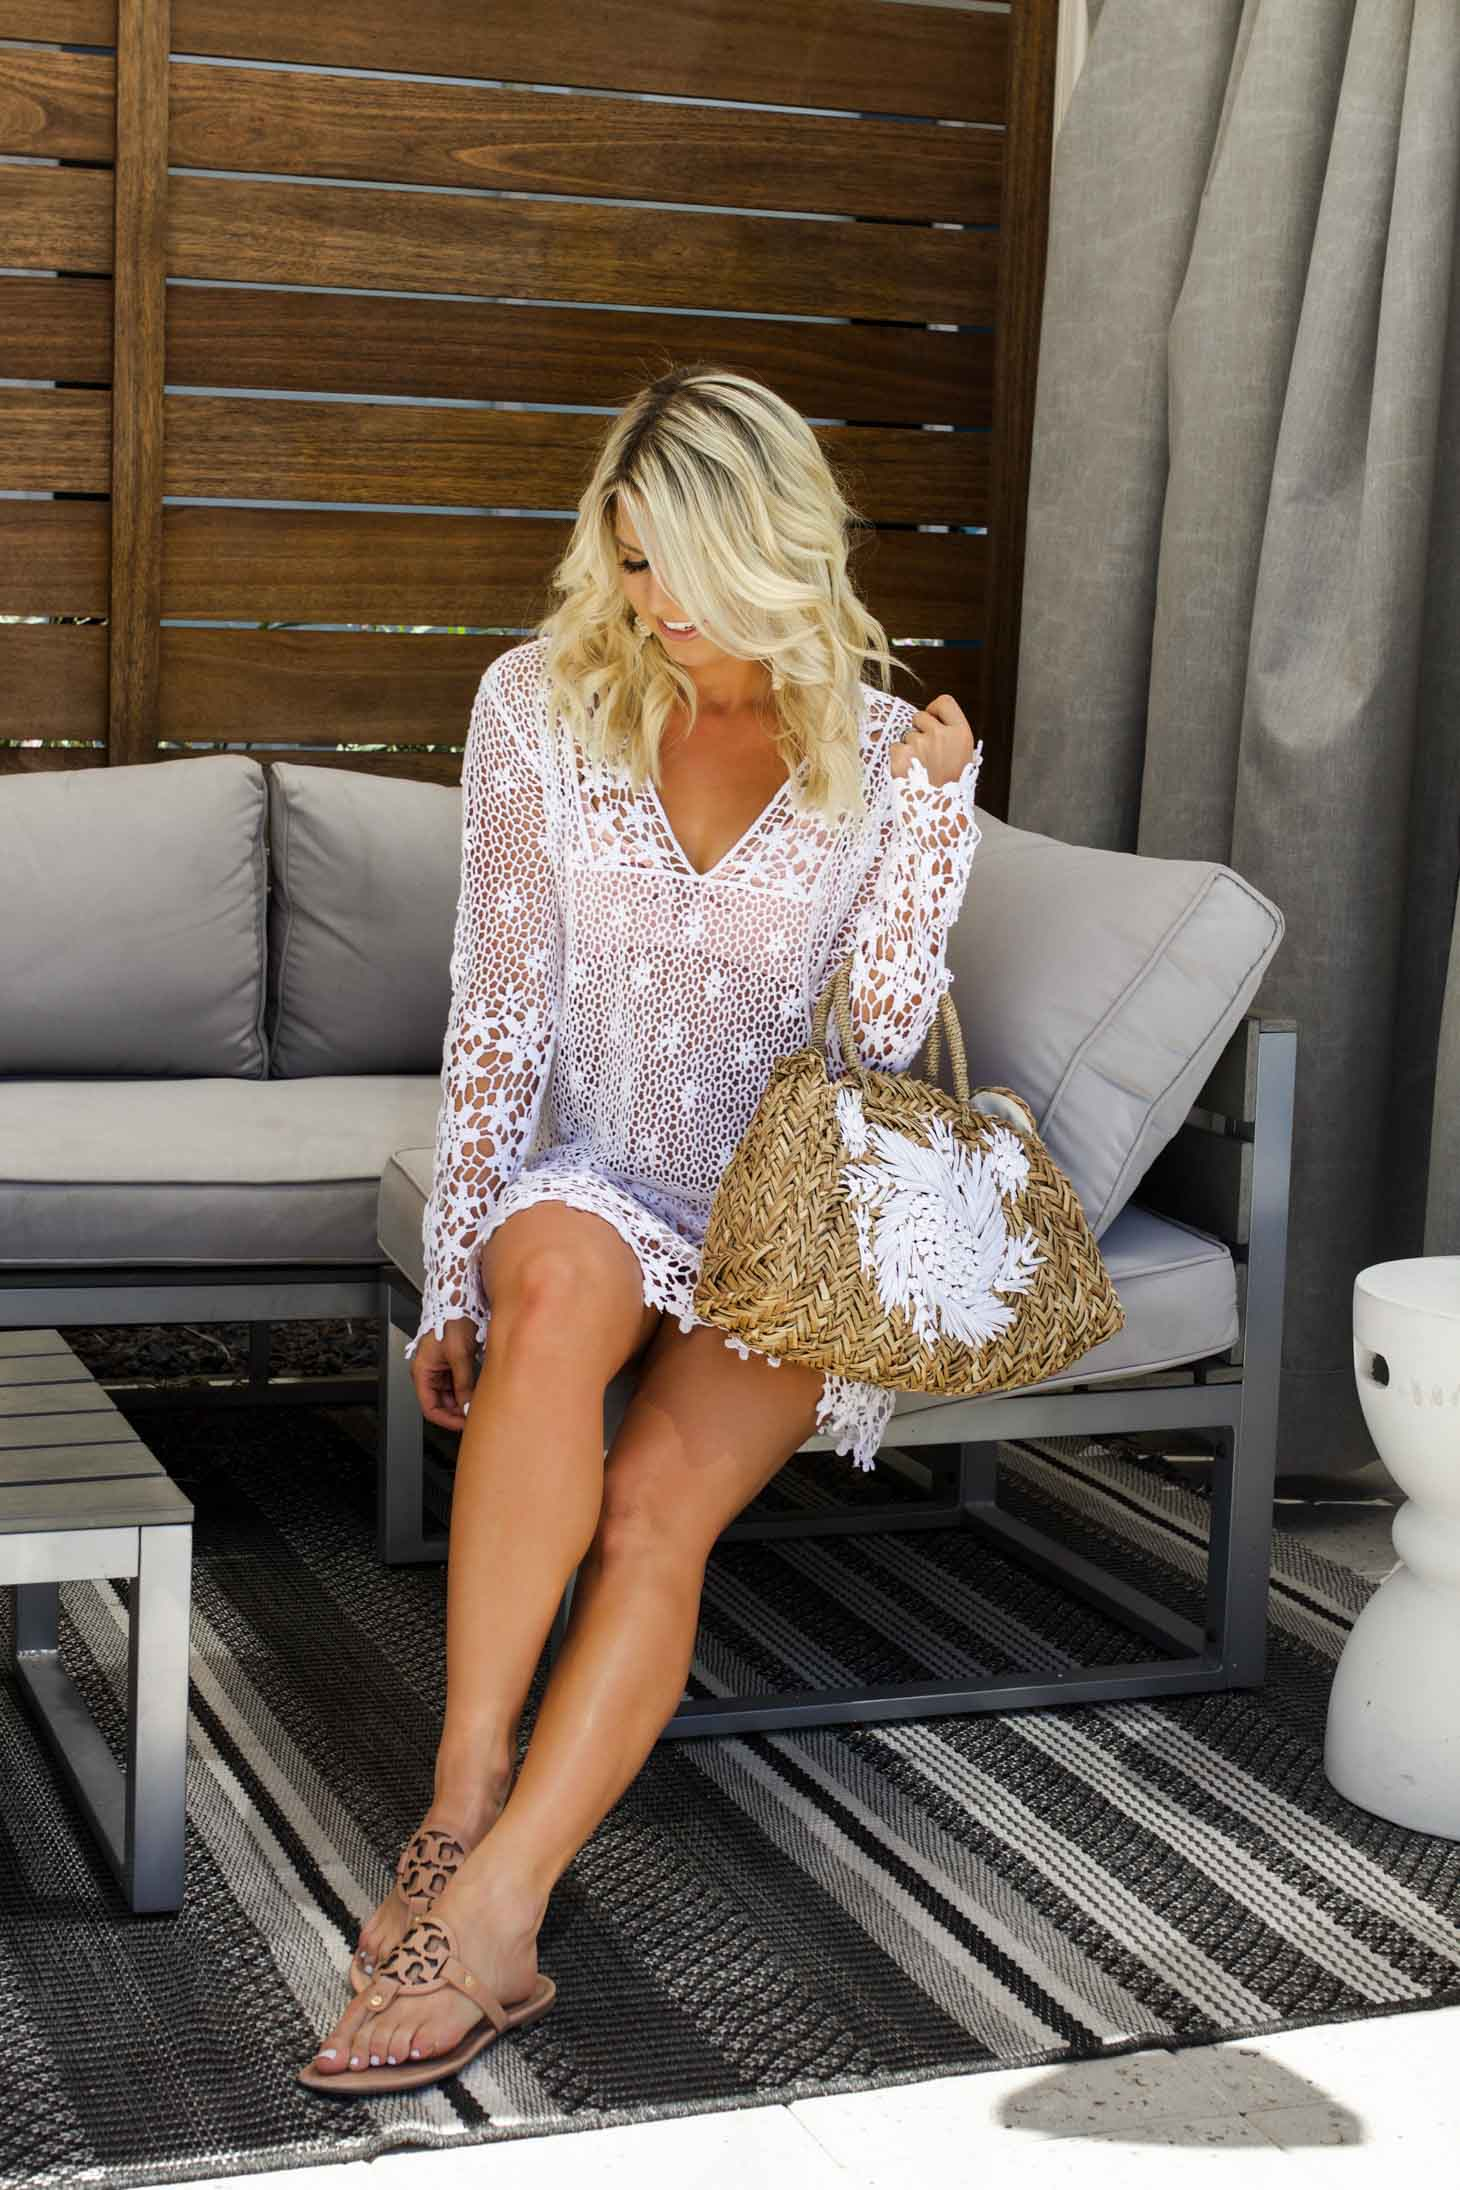 Erin Eilzabeth of Wink and a Twirl shares this Tortuga Coverup during her staycation at the Hotel Adeline in Scottsdale, Arizona